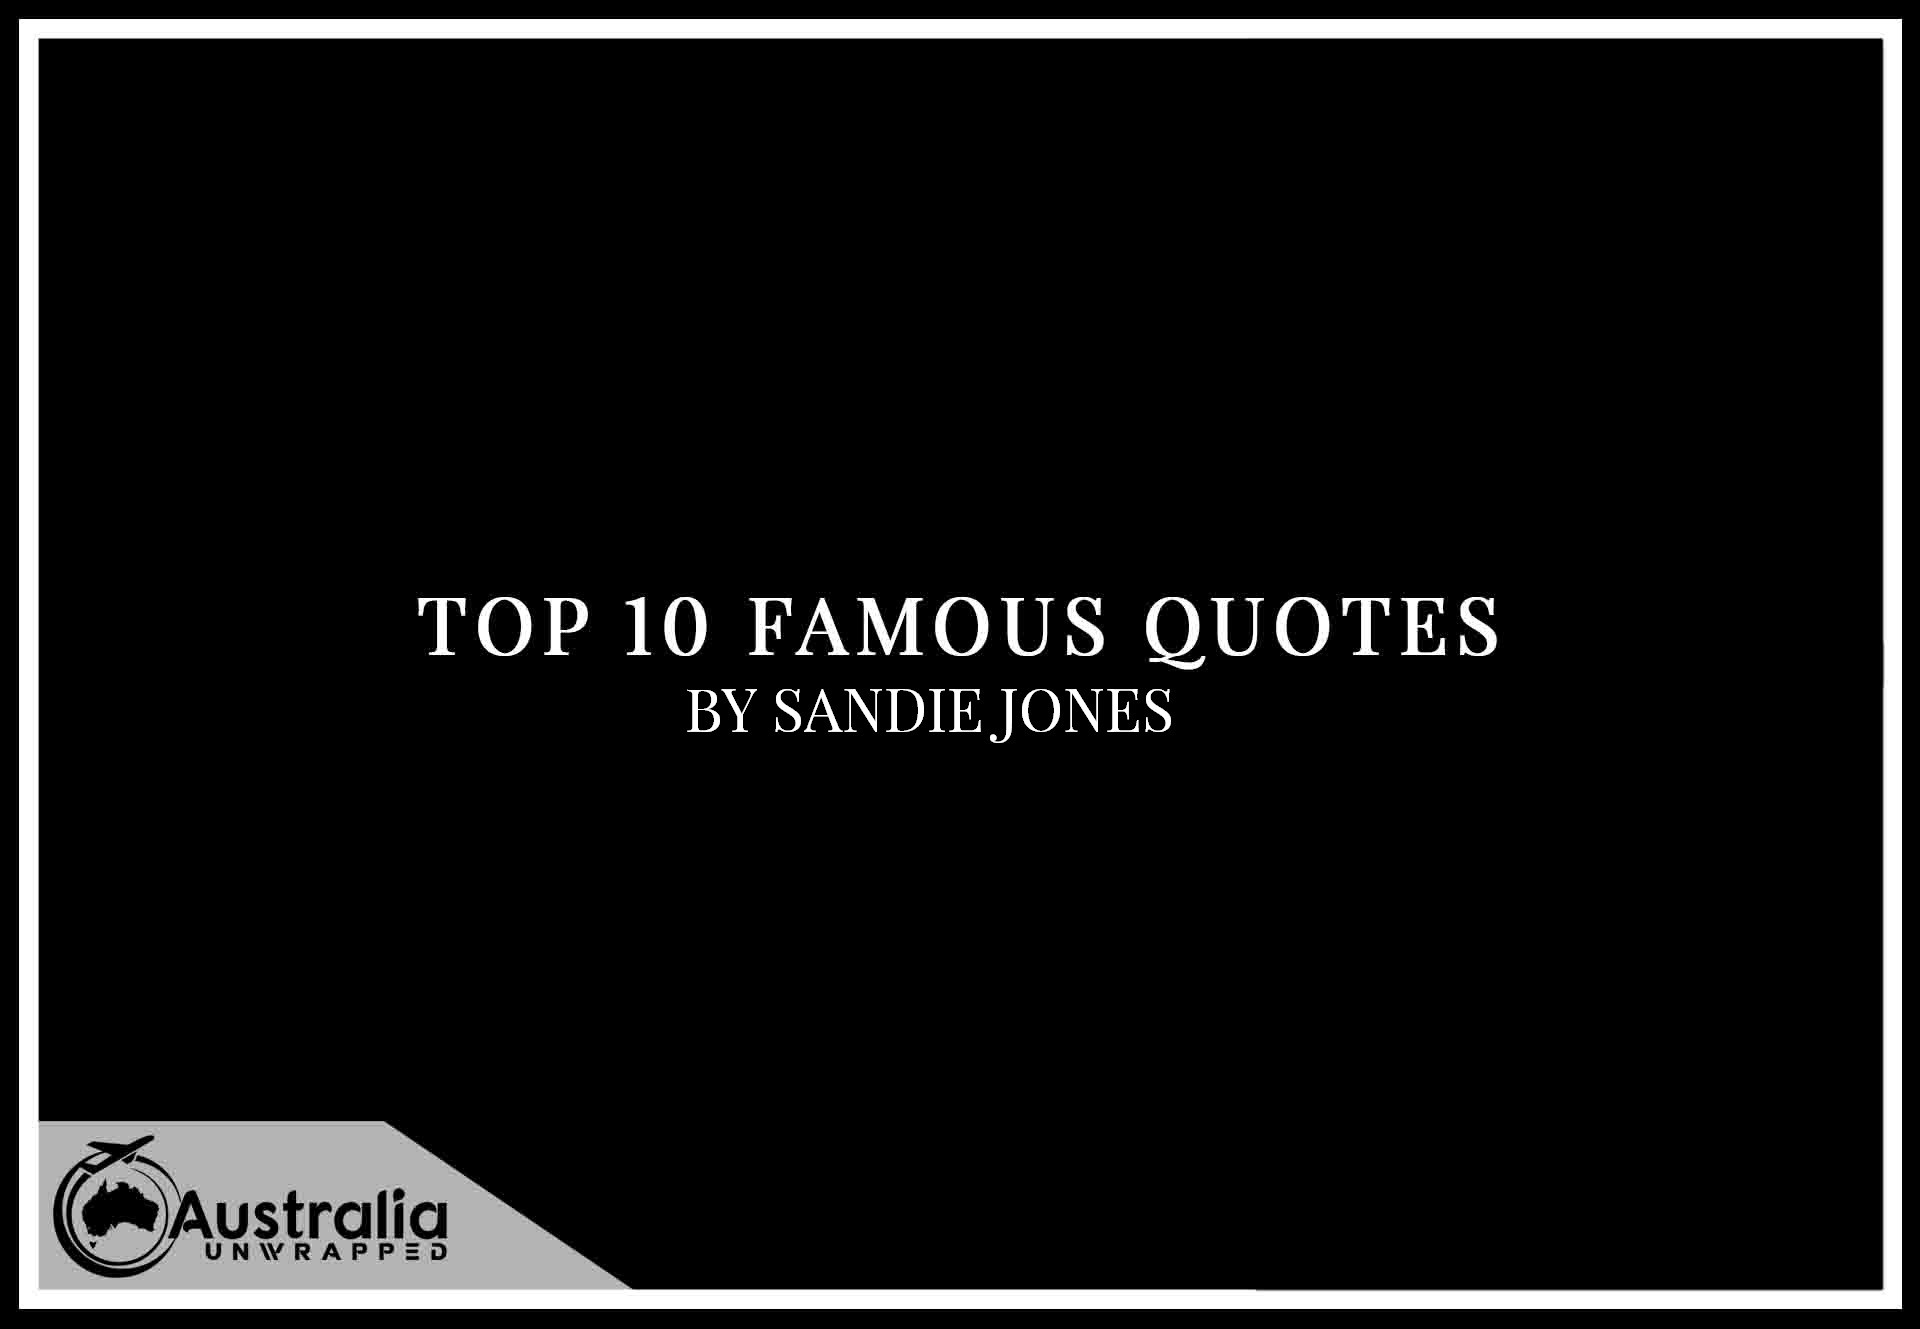 Top 10 Famous Quotes by Author Sandie Jones